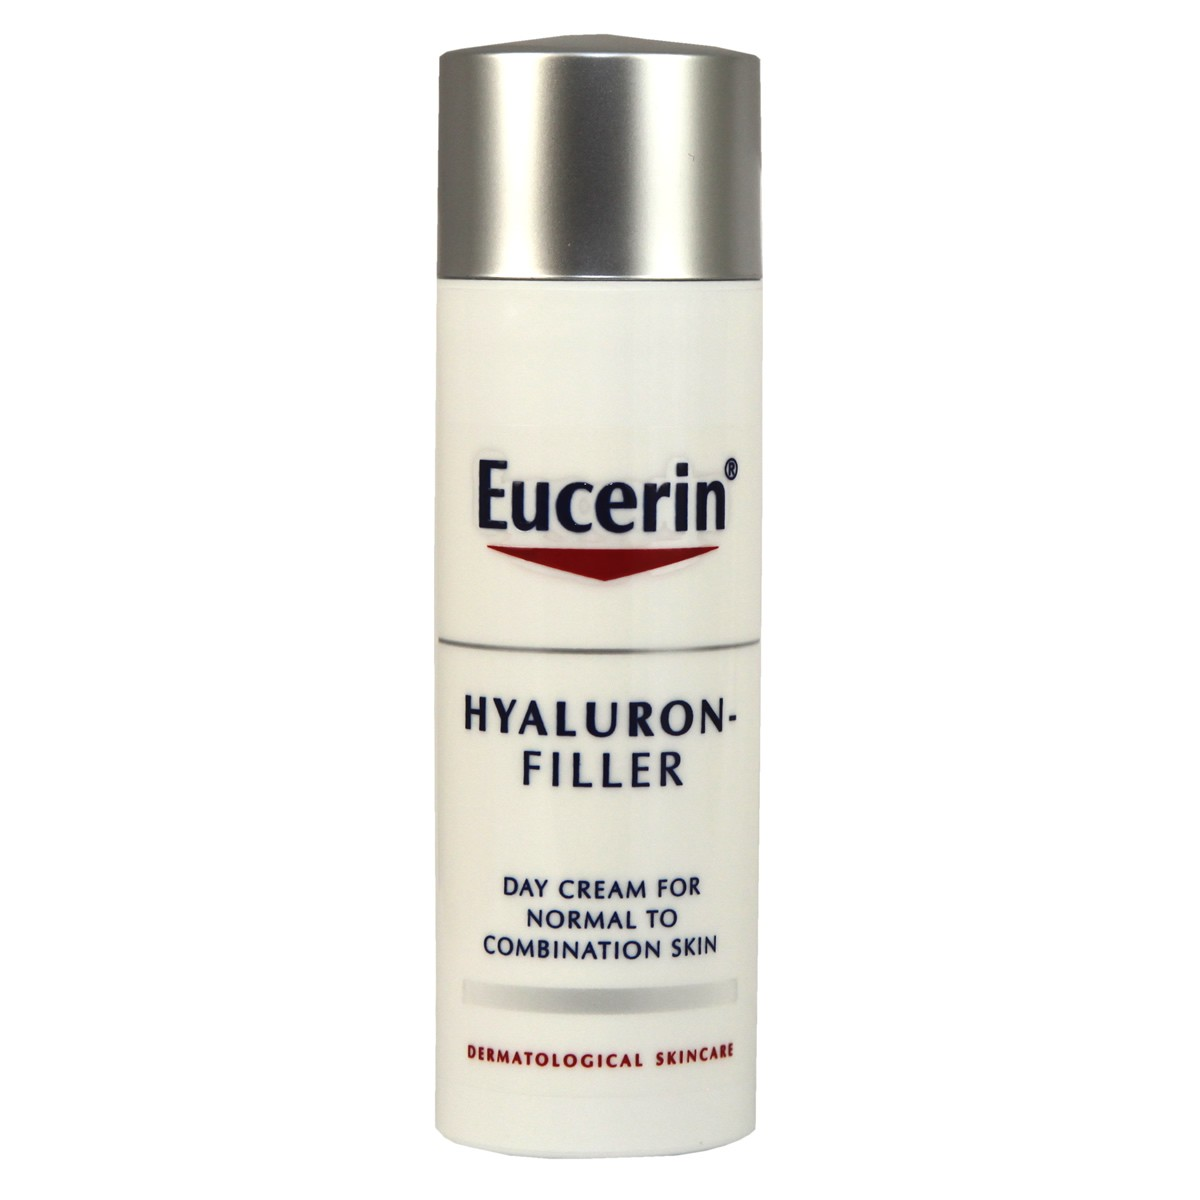 Eucerin Hyaluron-Filler Day Cream for Normal to Combination Skin